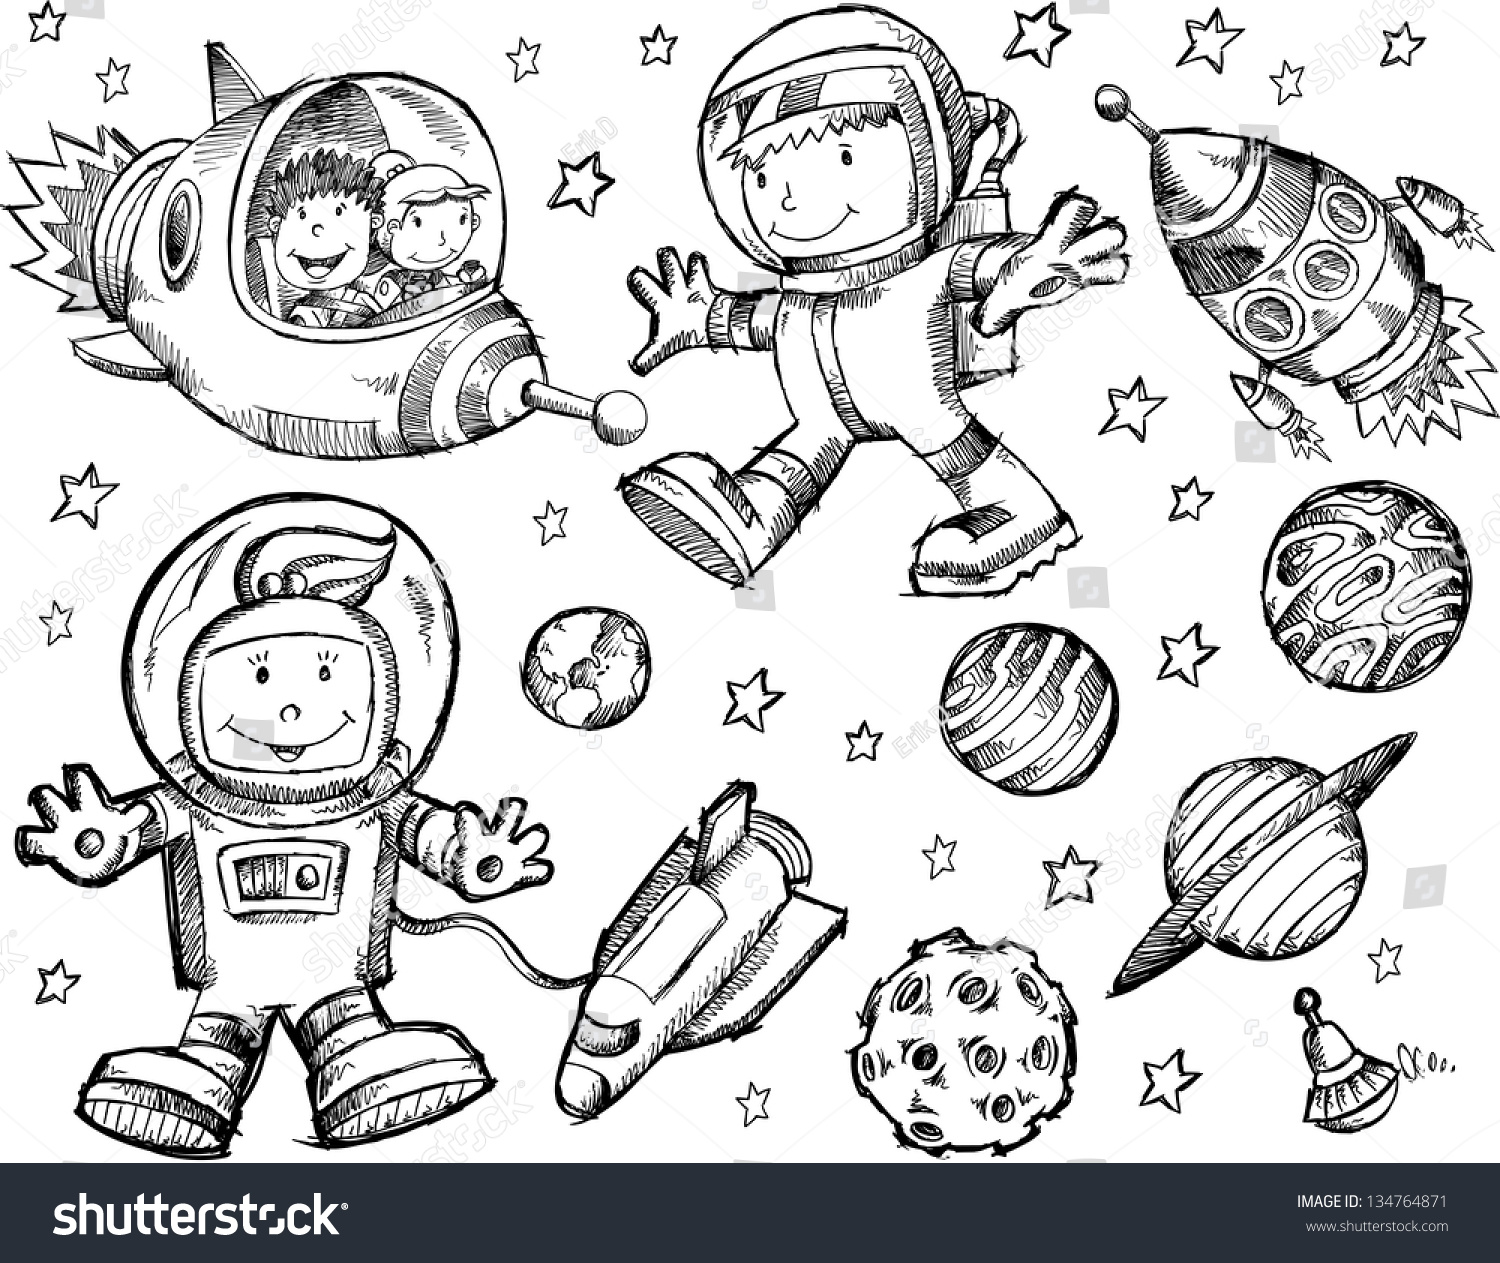 Cute Sketch Drawing Doodle Outer Space Vector Set